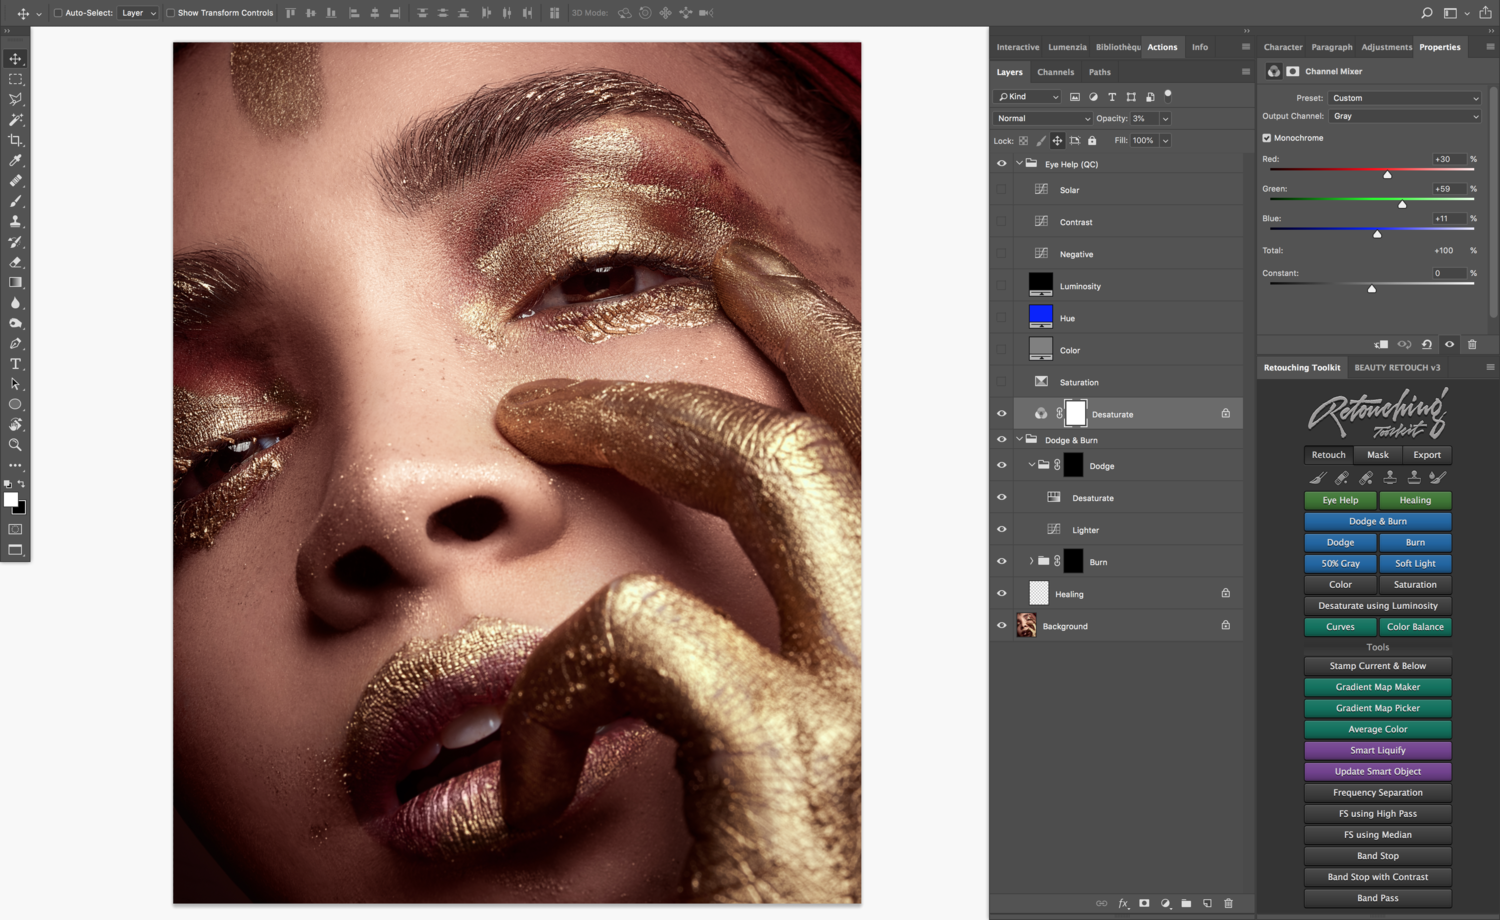 Fstoppers Reviews the Retouching Toolkit: The Most